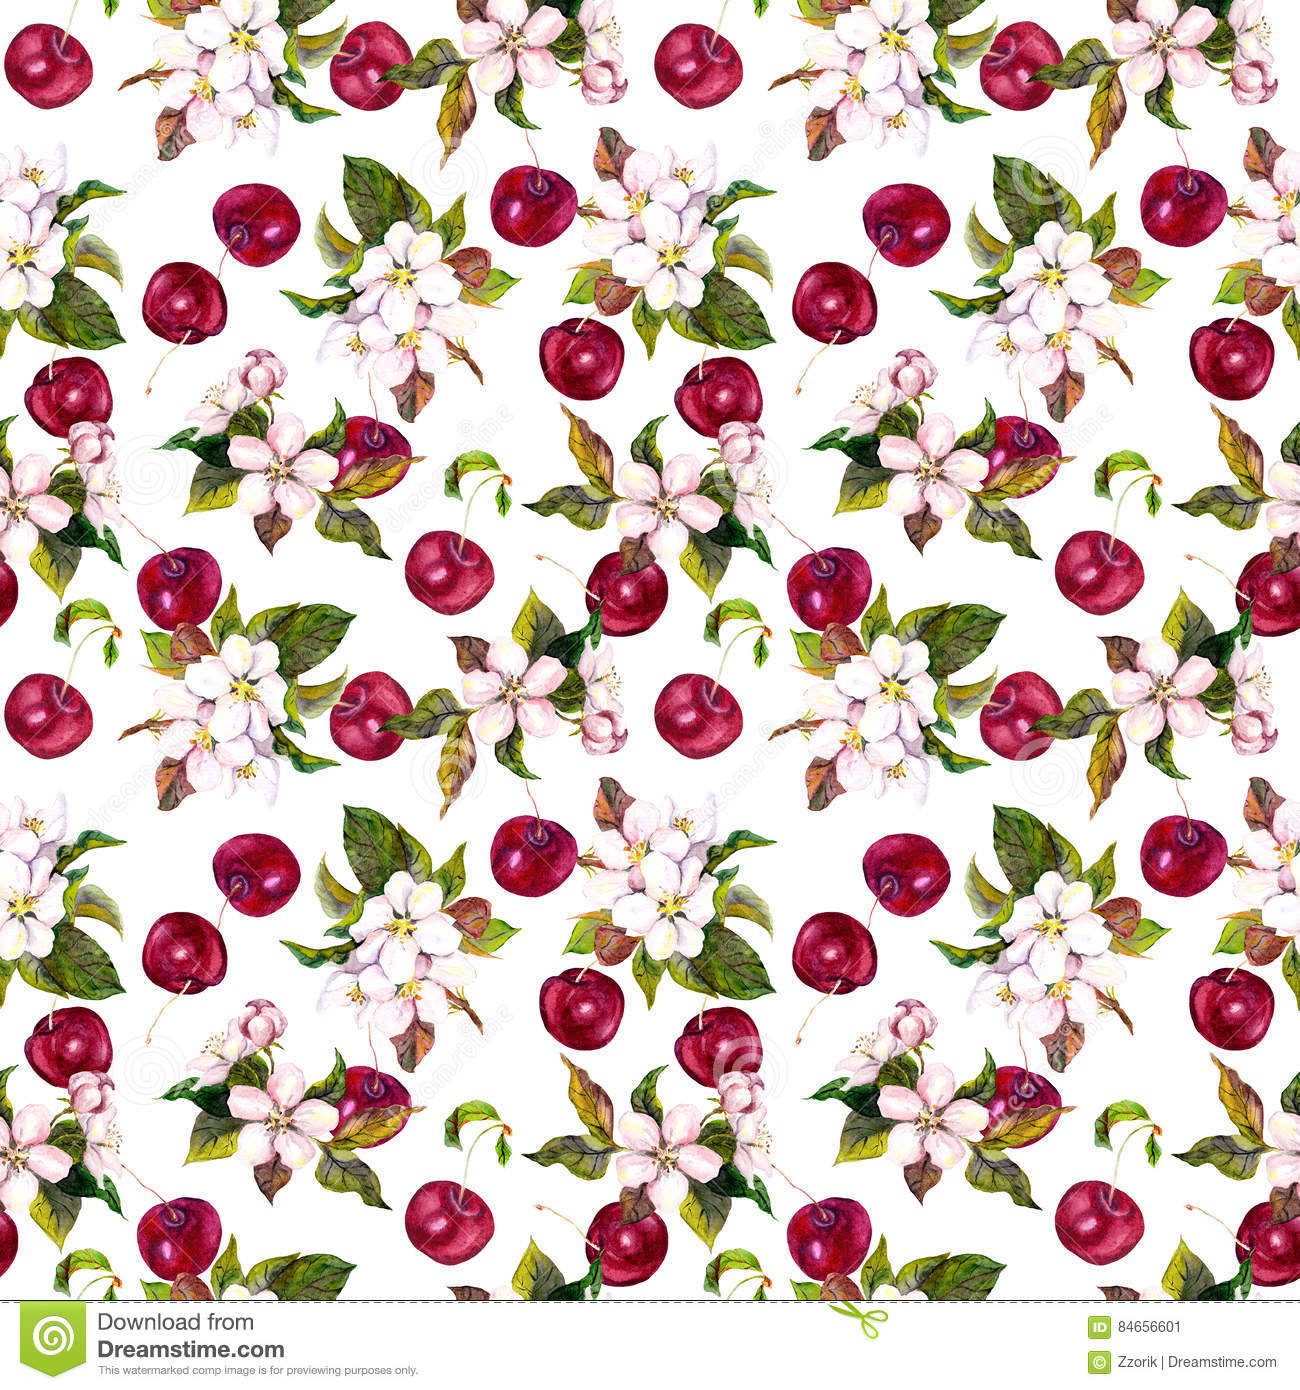 Watercolor Floral Wallpaper With Cherry Berries And Flowers Stock